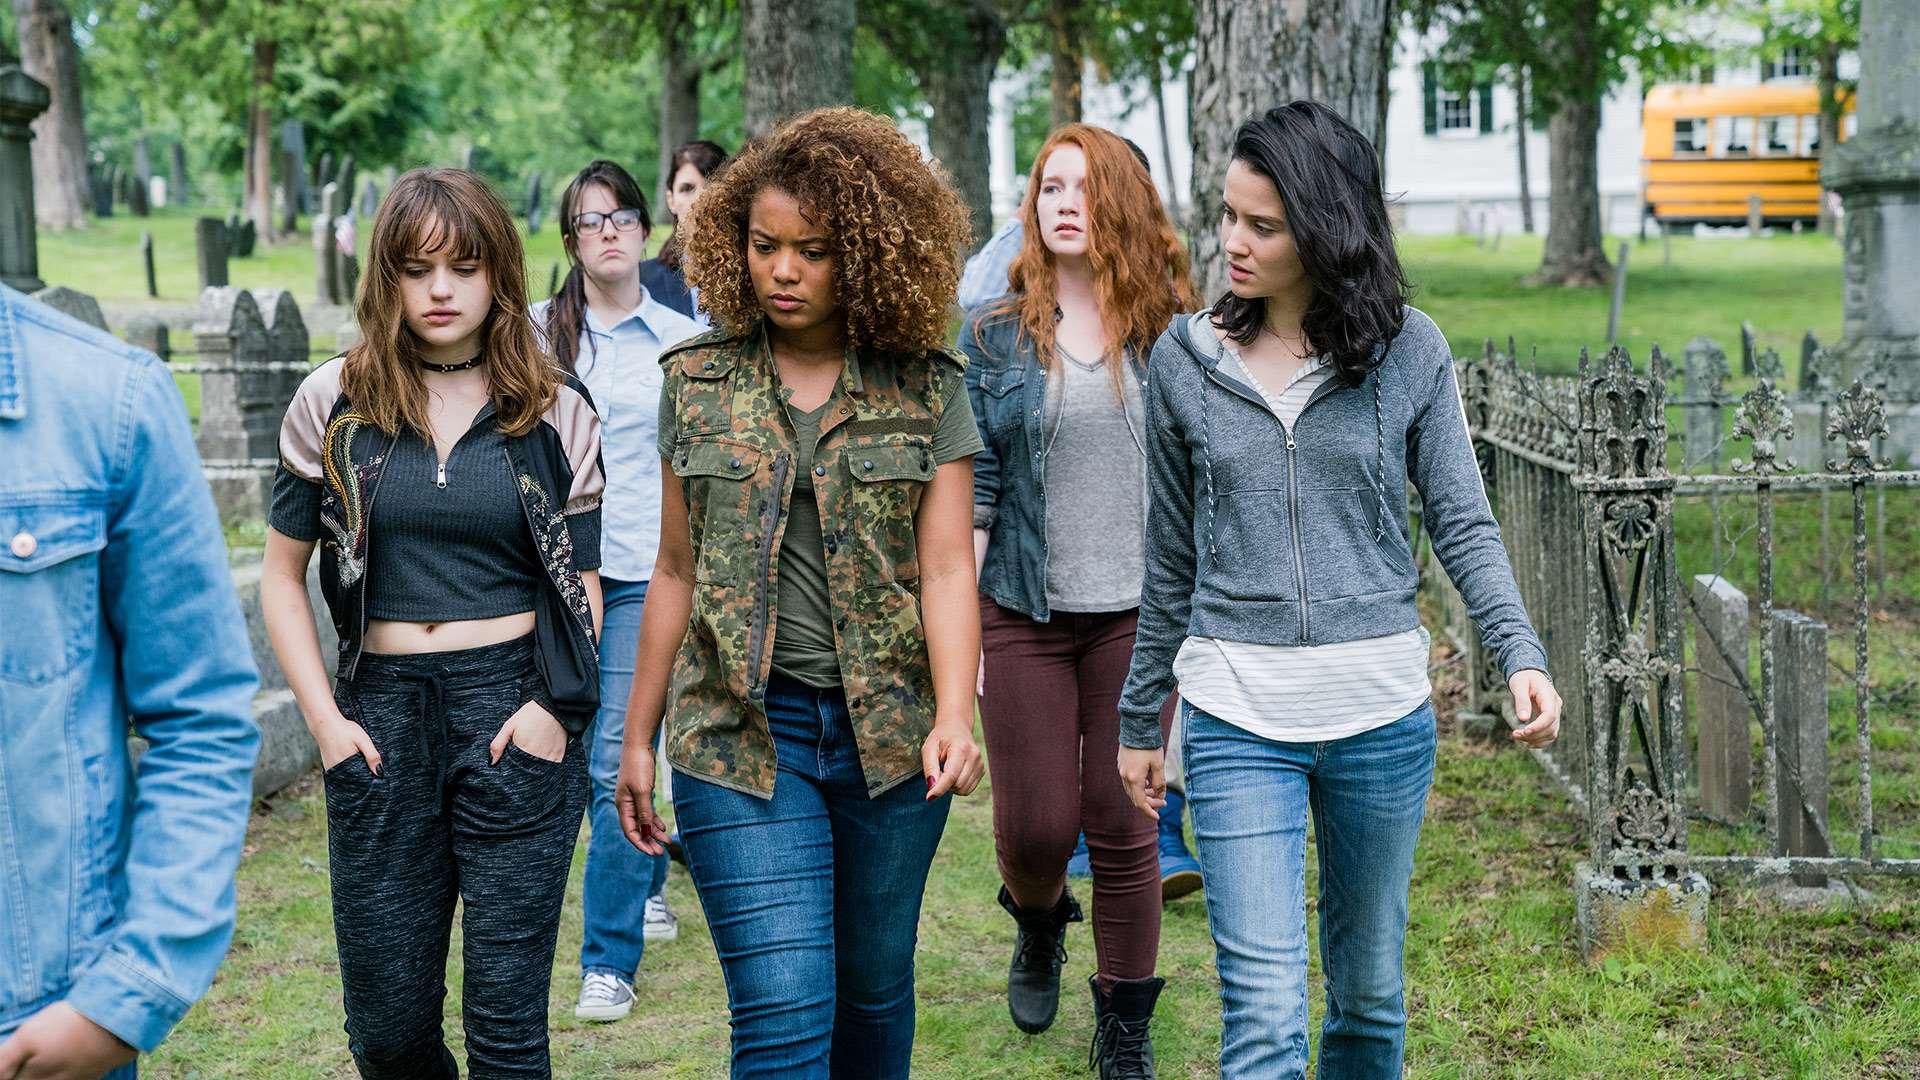 Joey King, Jaz Sinclair, Annalise Basso, Julia Goldani Telles in Slender Man (2018)